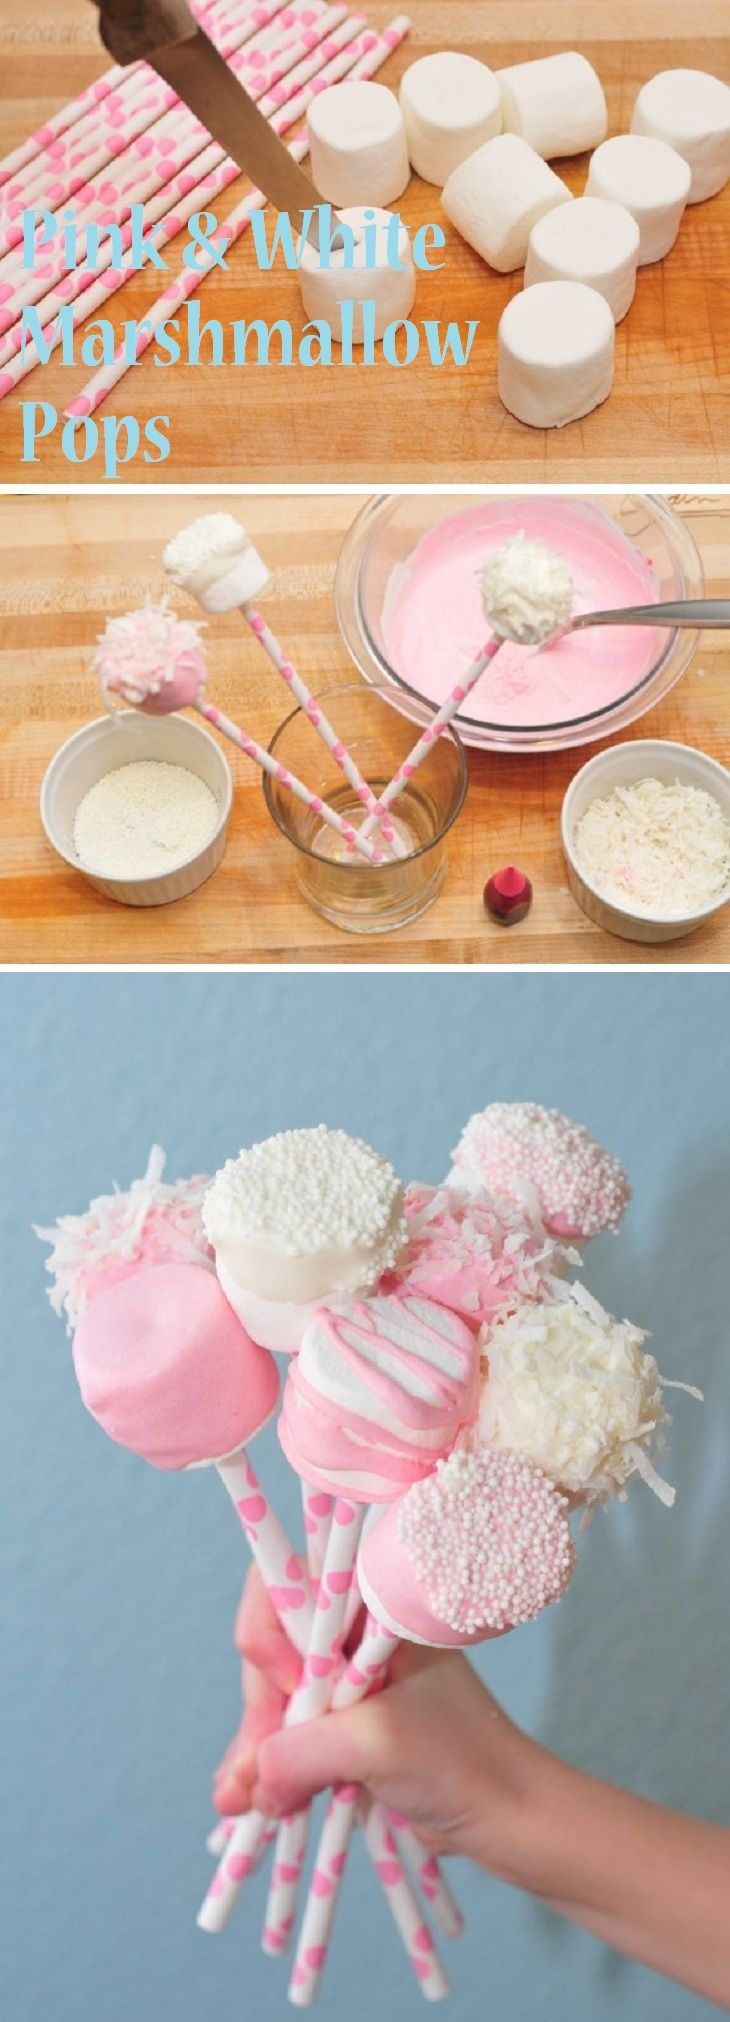 Marshmallow Pops - idée originale pour candy bar ou baby shower, à réaliser avec…